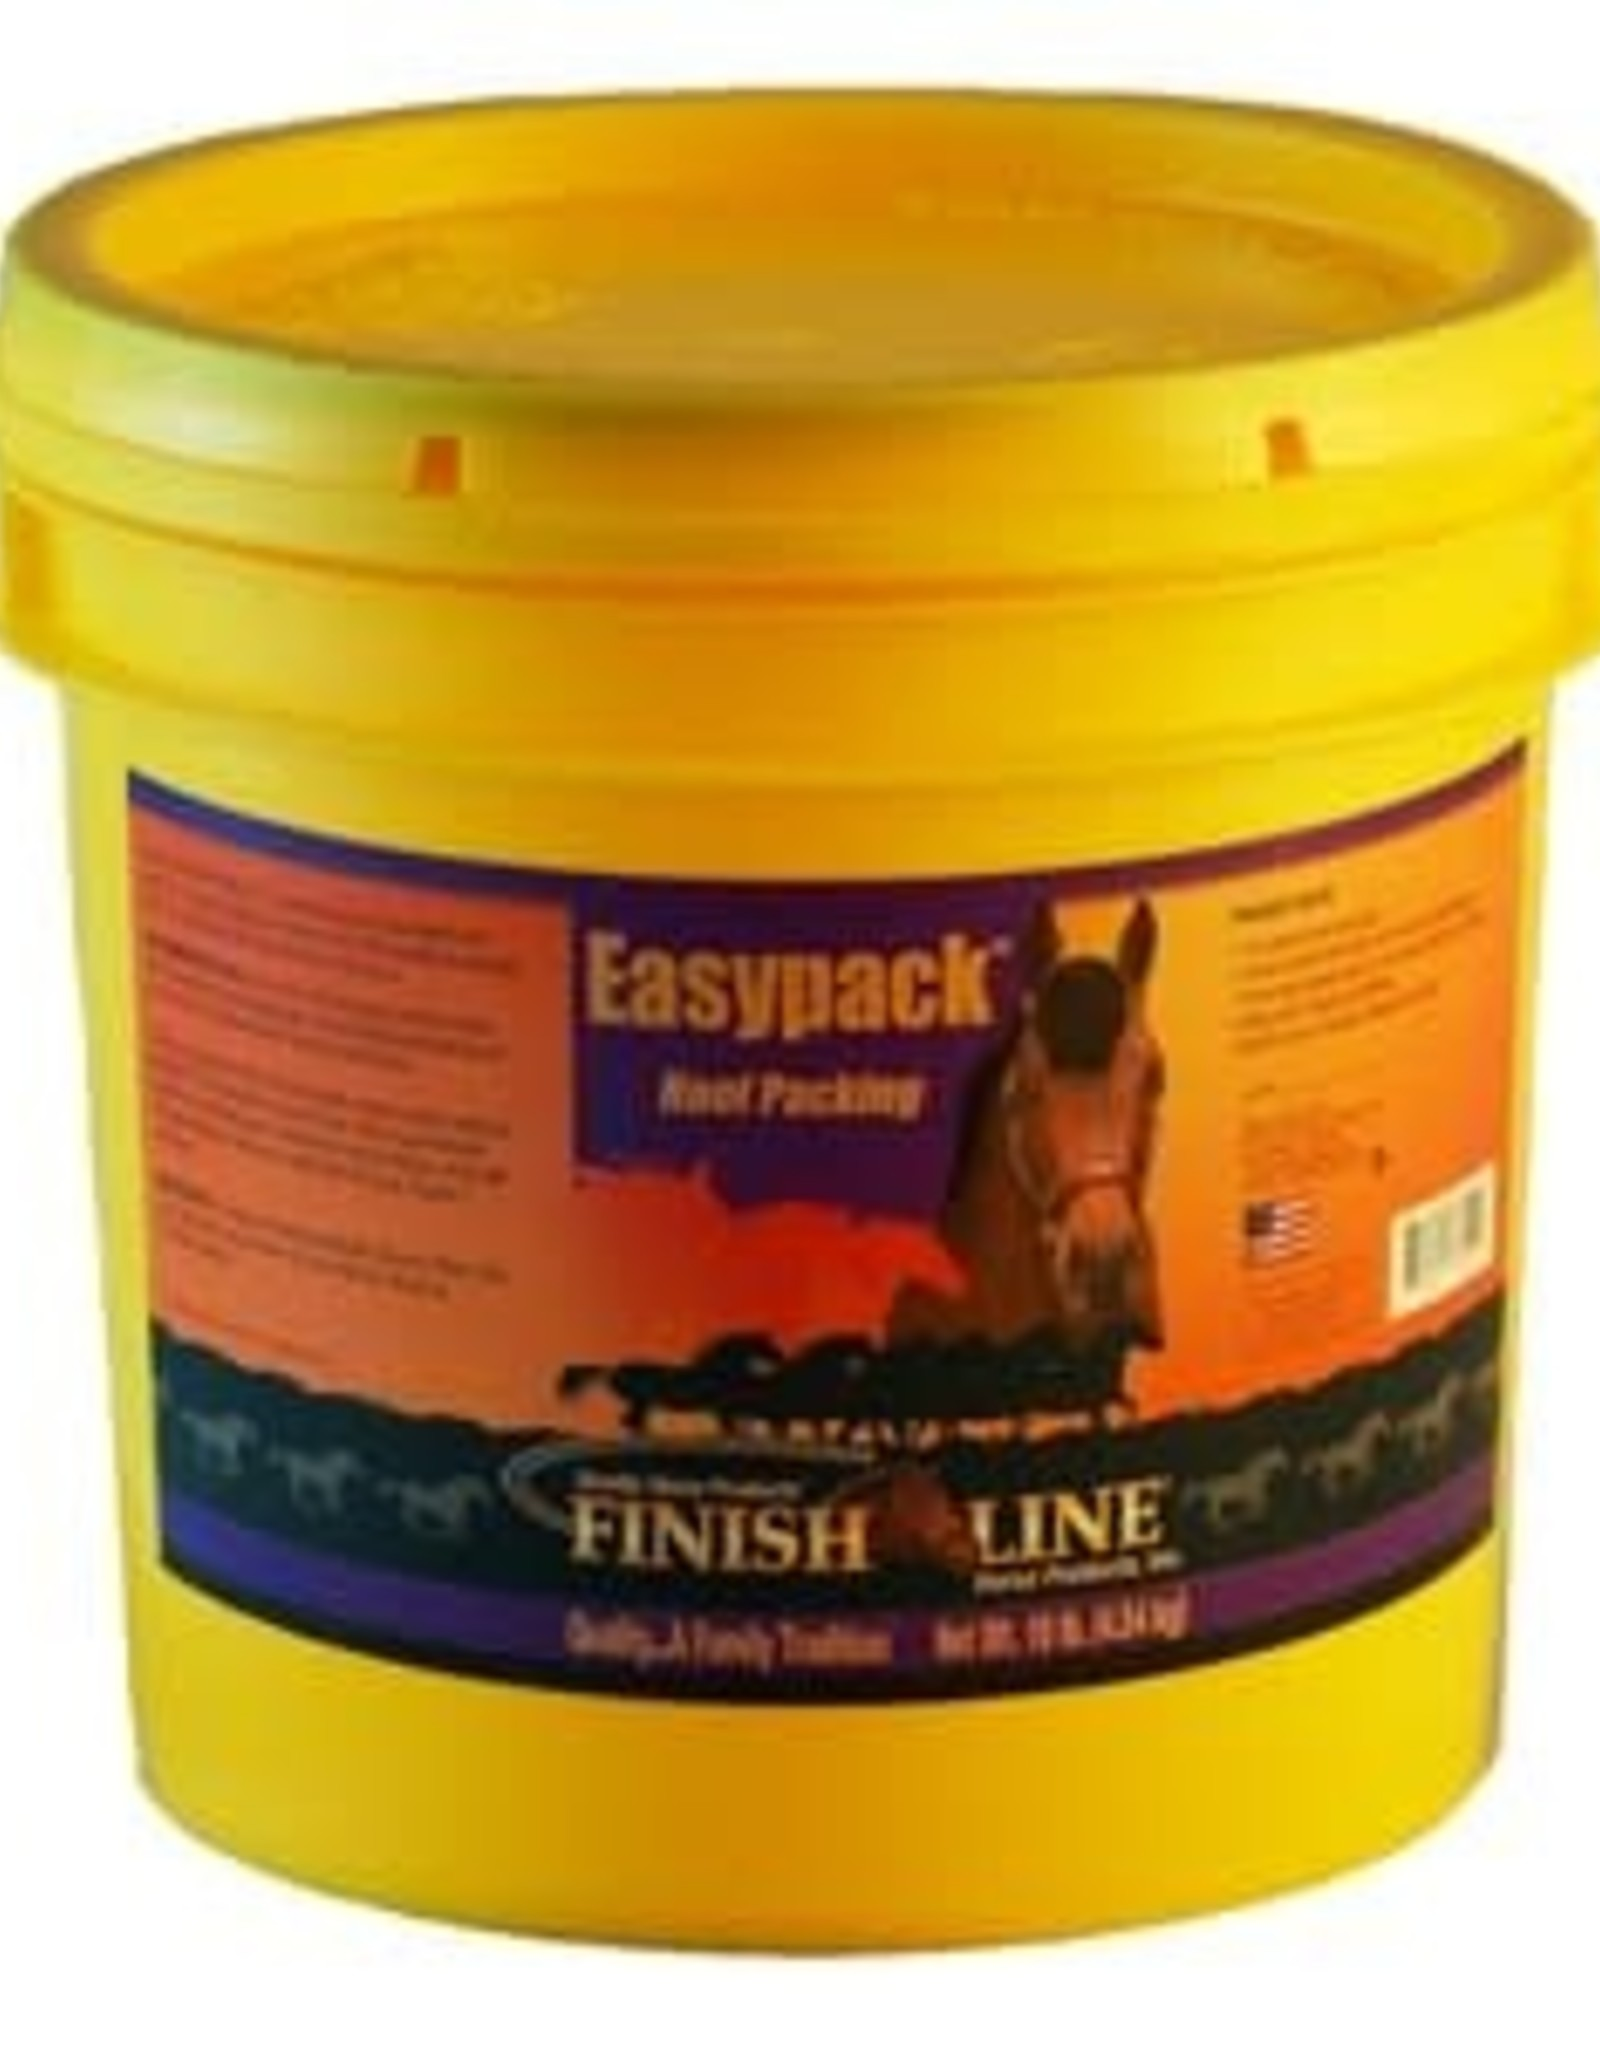 FINISHLINE Easypack Hoof OAcking 5lbs